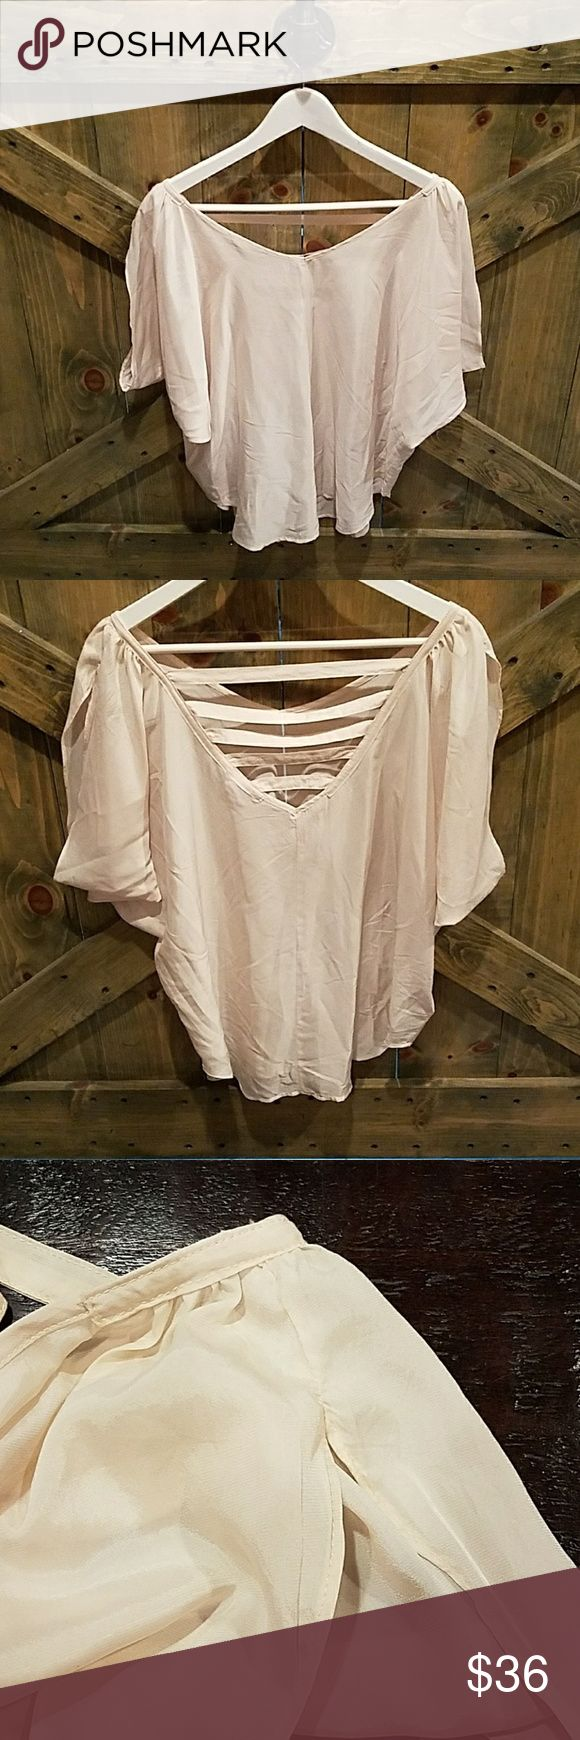 BCBG CREAM TOP Versatile great blouse for a dinner date, or the office. Or throw on under a casual  jacket or blazer and you're good to go! Size large. Just needs pressing. Sorry ladies I don't iron :) BCBGeneration Tops Blouses